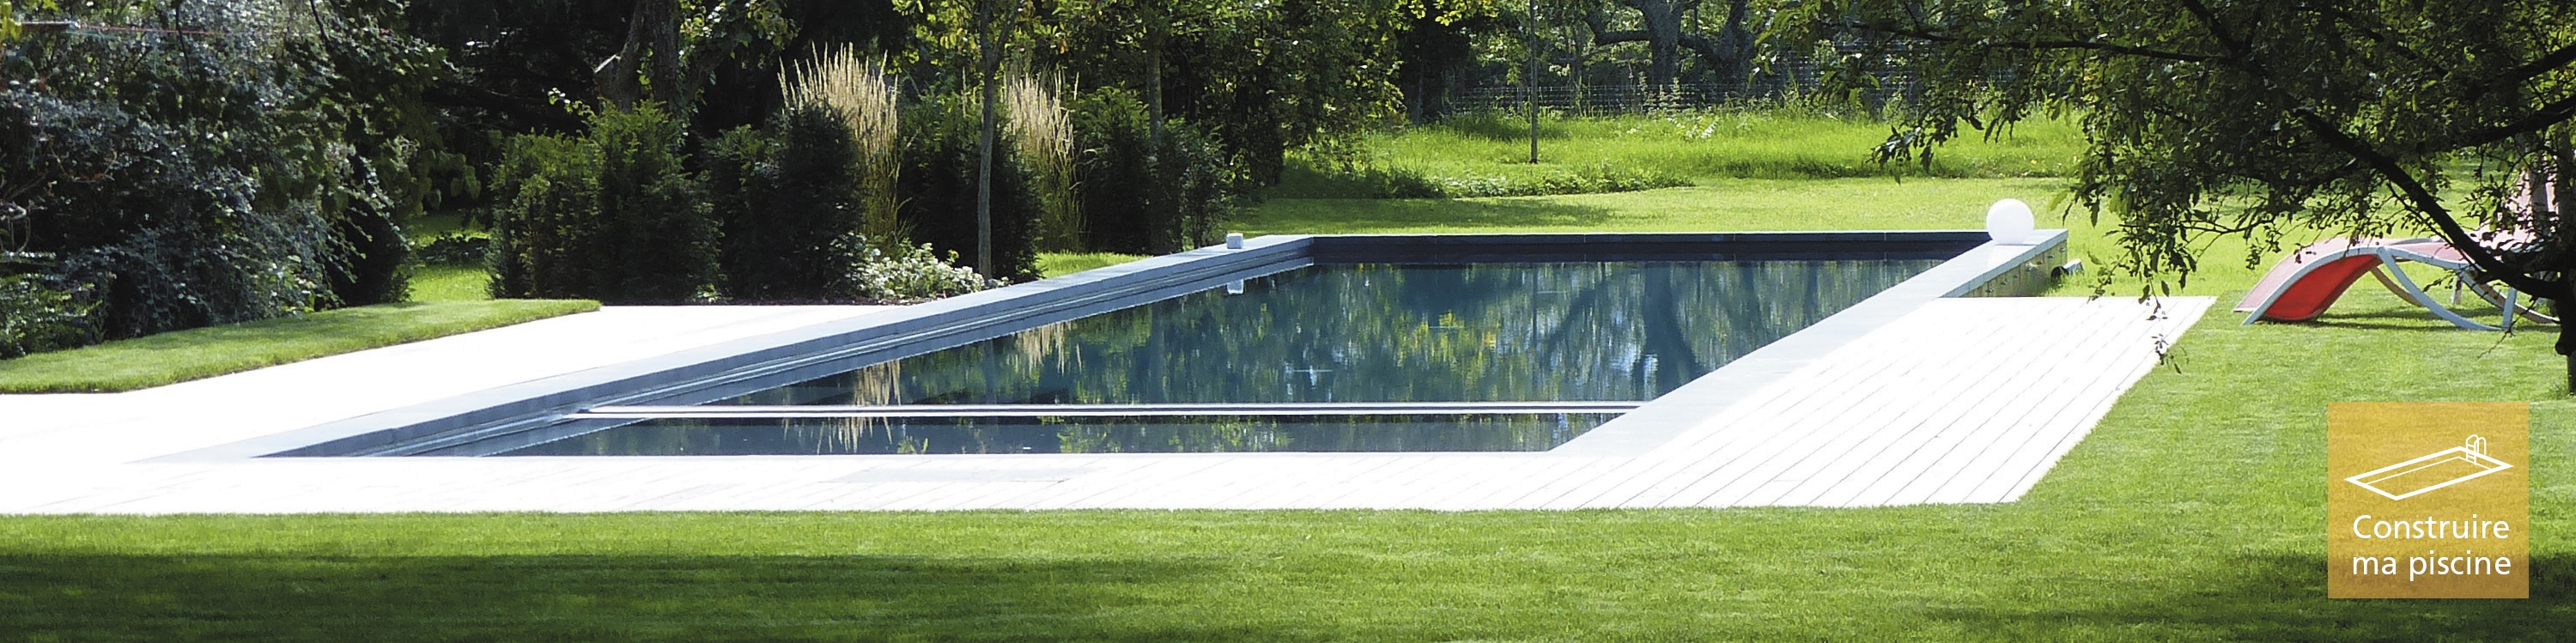 EVERBLUE_Construction de piscine